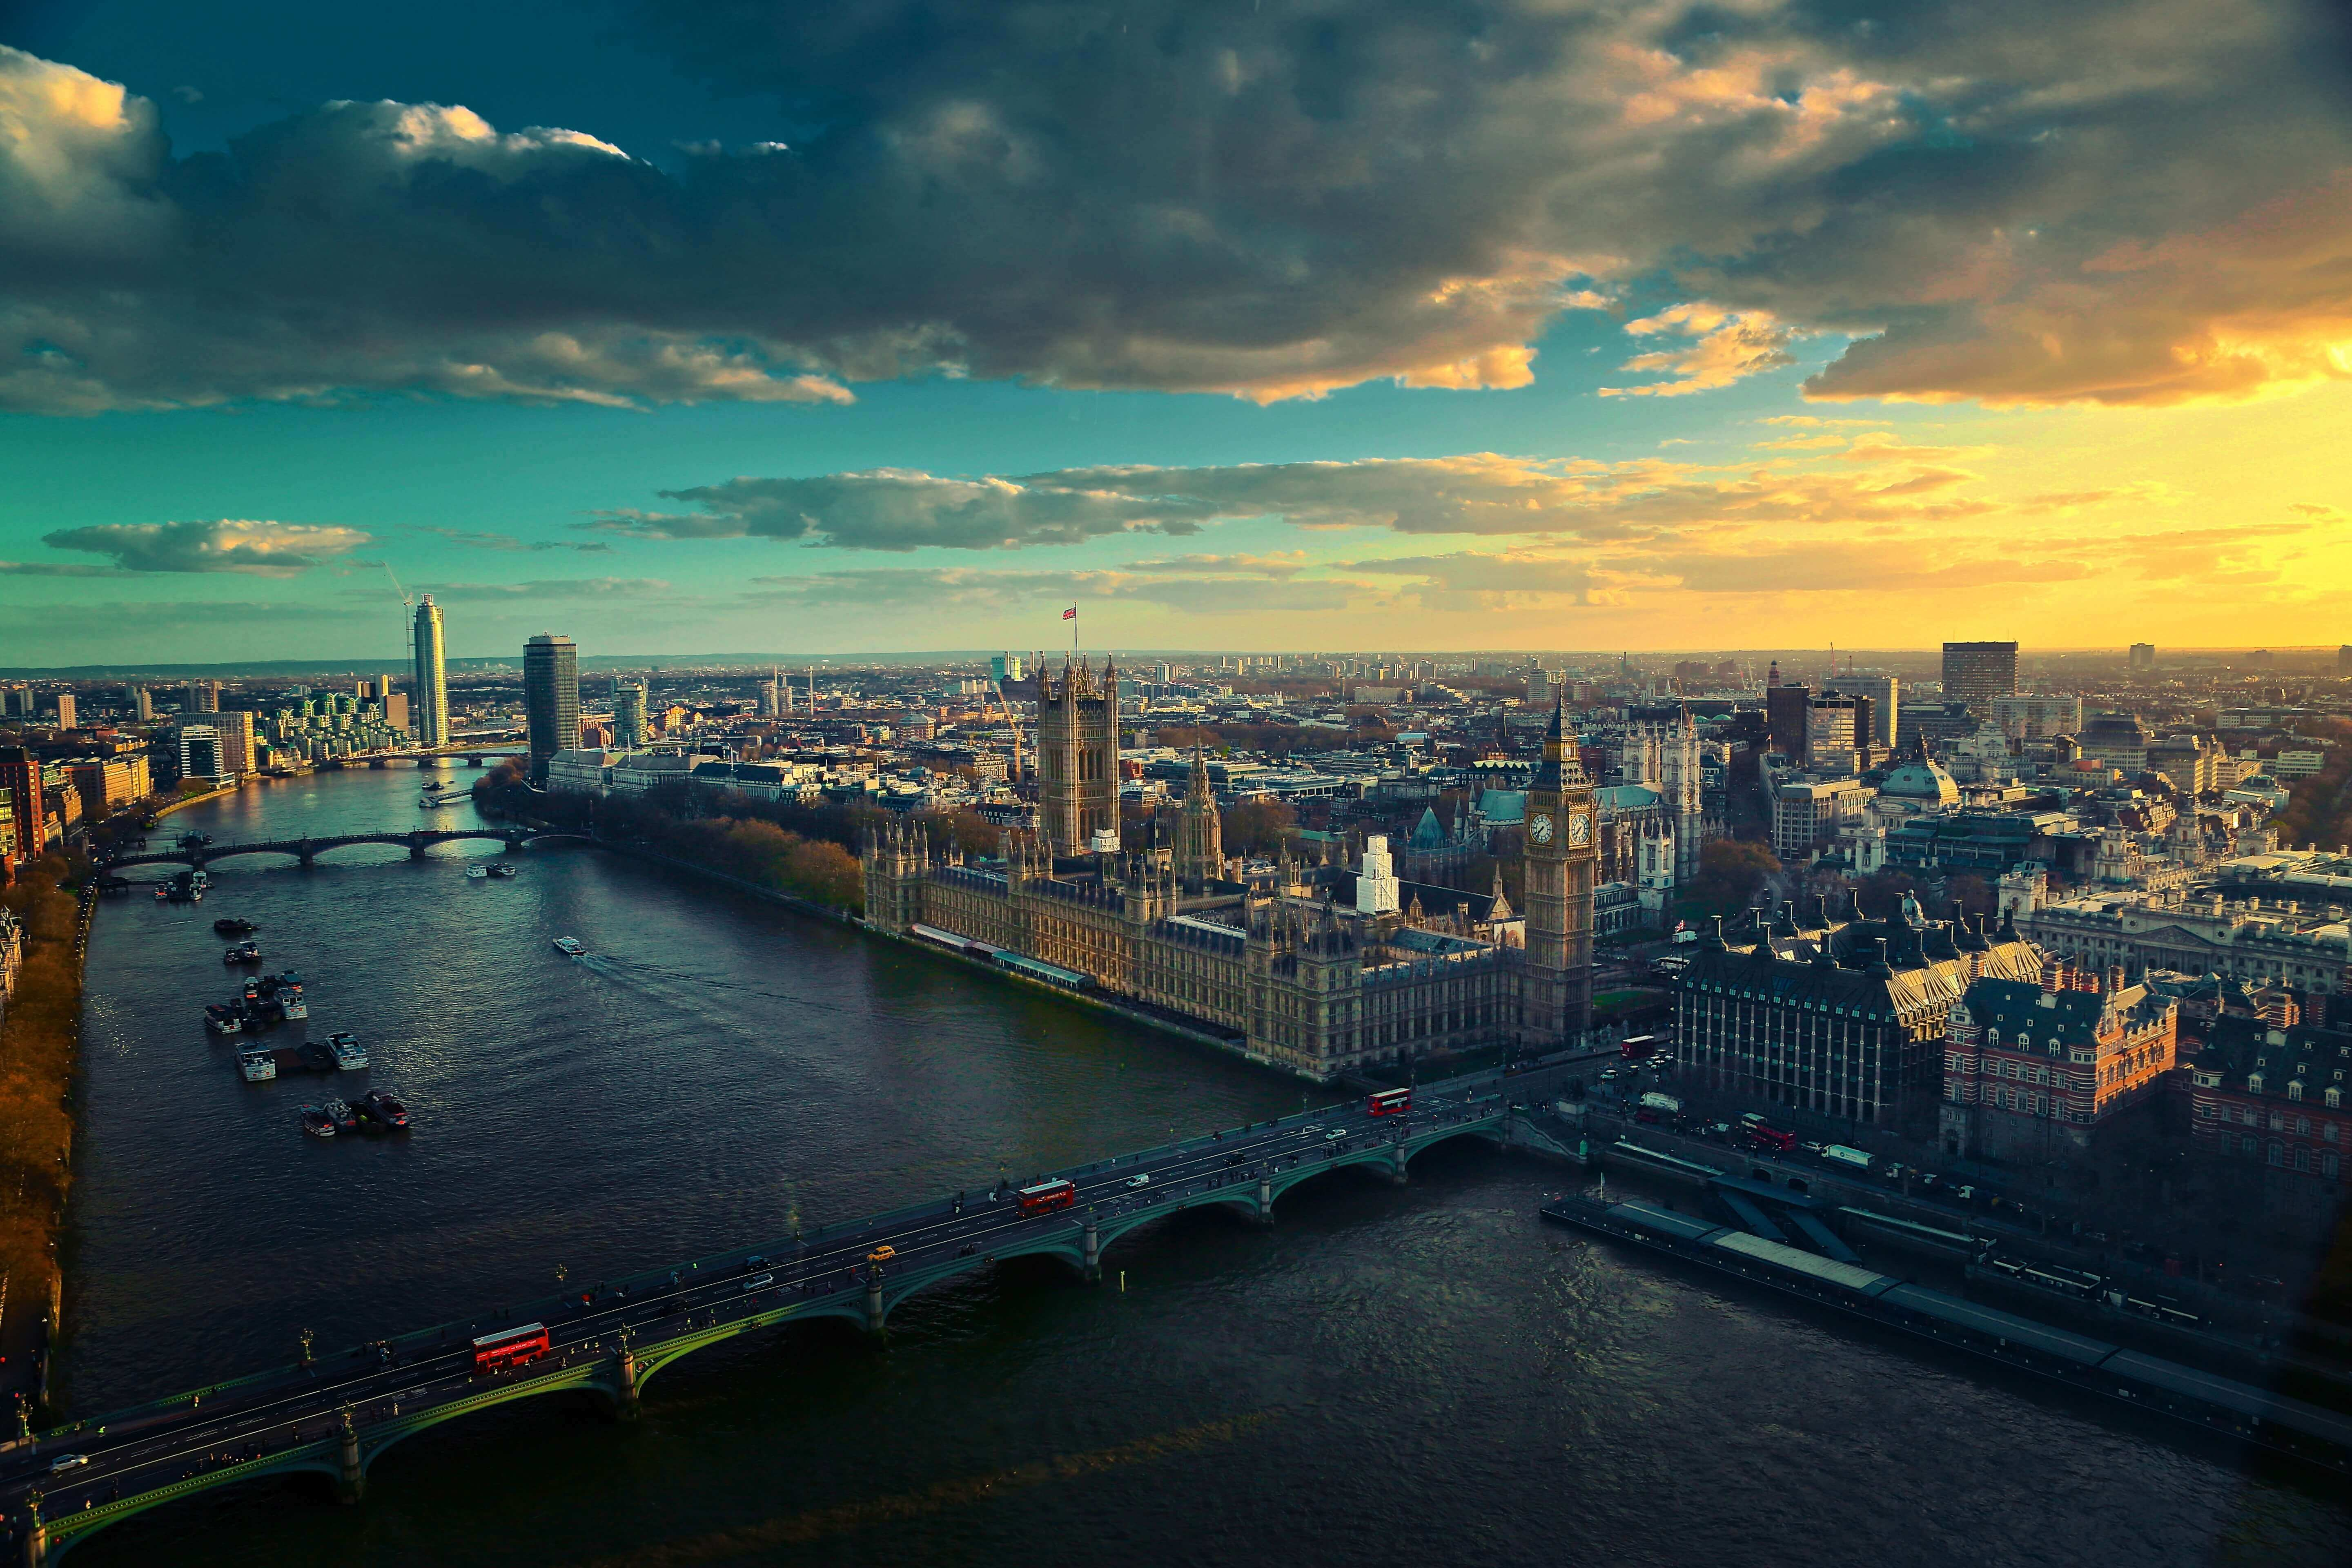 cityscape of London skyline